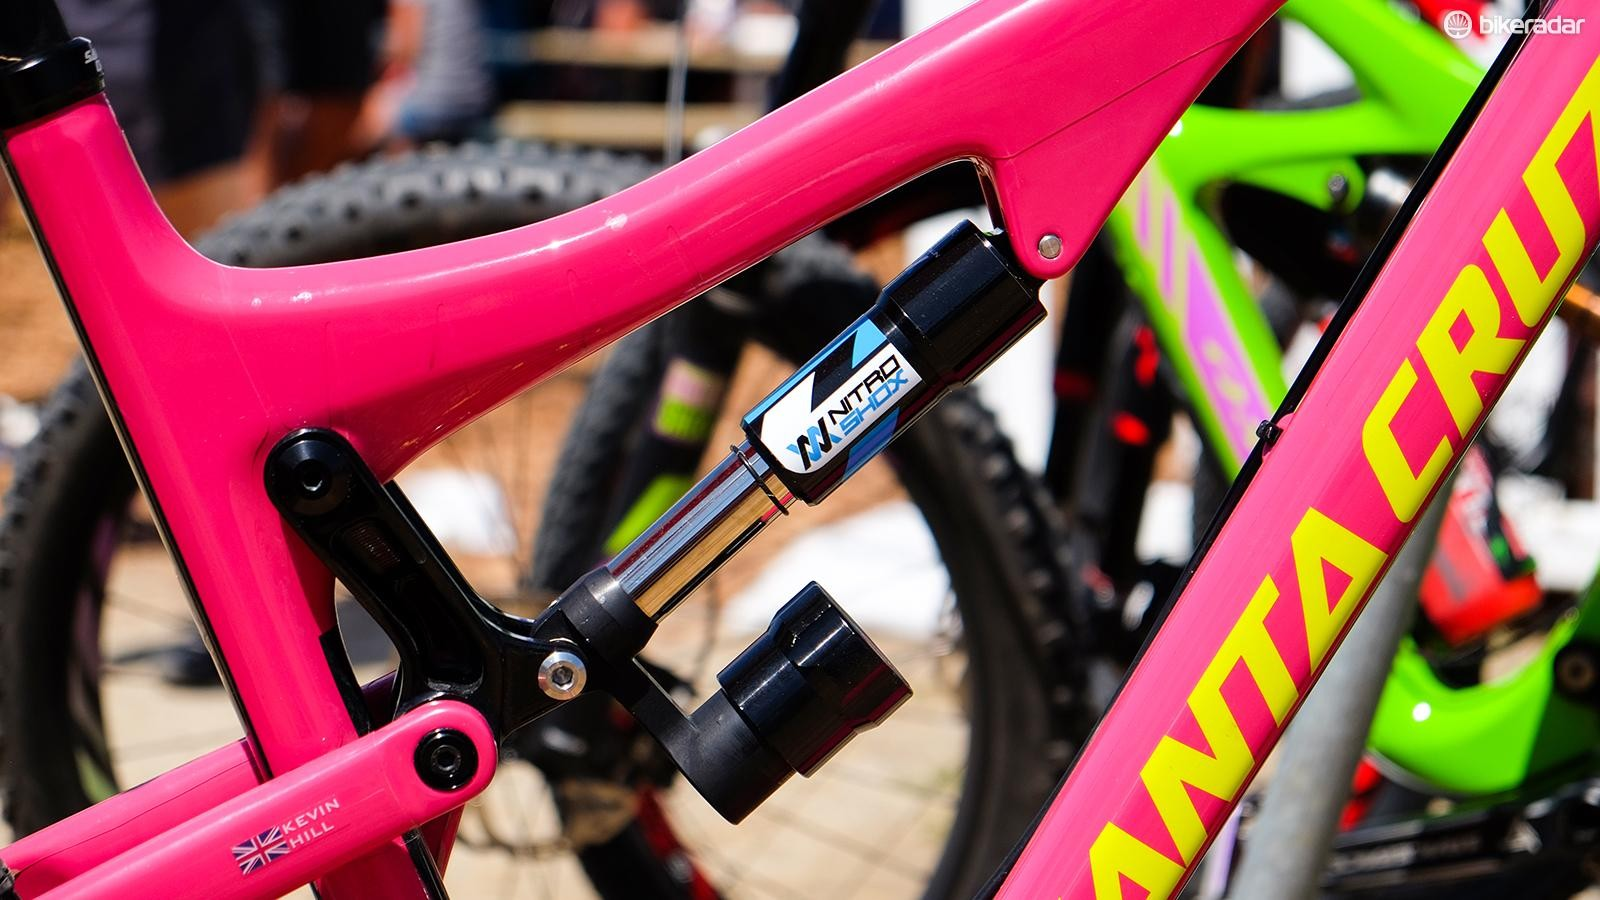 NitroShox is a small UK-based company with a different take on suspension design. This shock uses a nitrogen-filled shock similar to the struts used in military and aviation applications. It's firm until it encounters impacts of a certain velocity